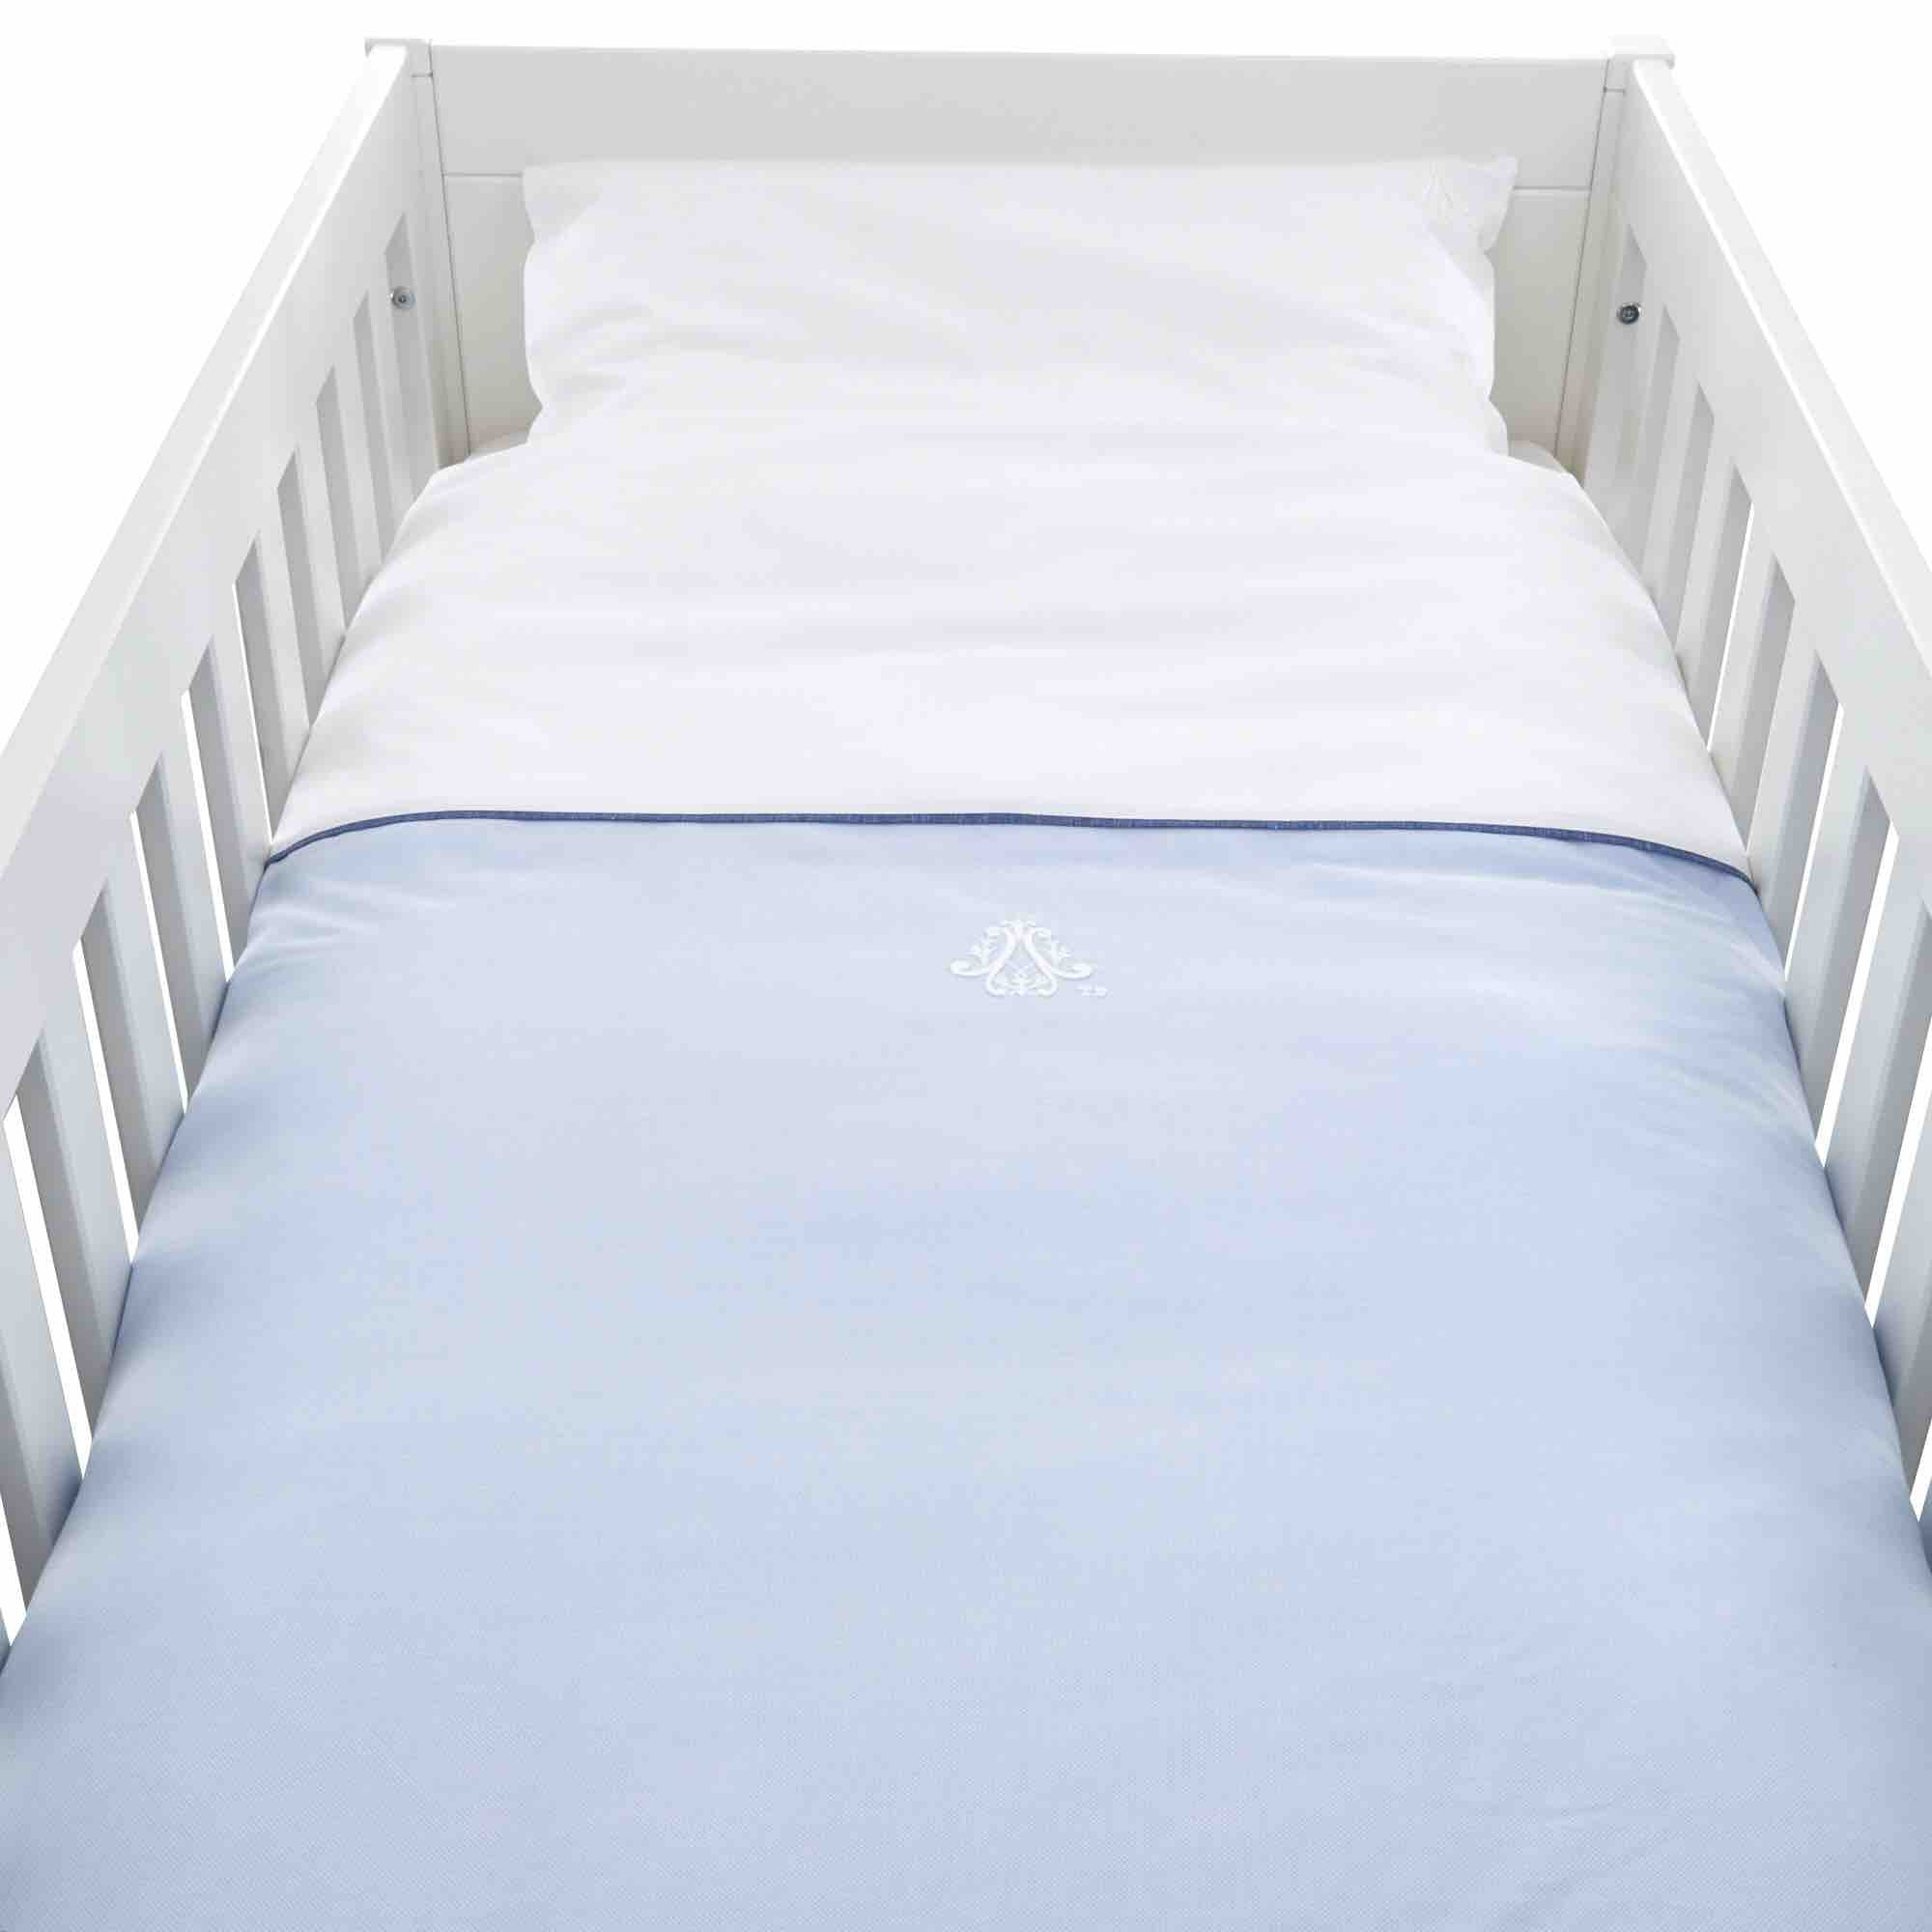 Theophile & Patachou Cot Bed Duvet Cover - Indigo